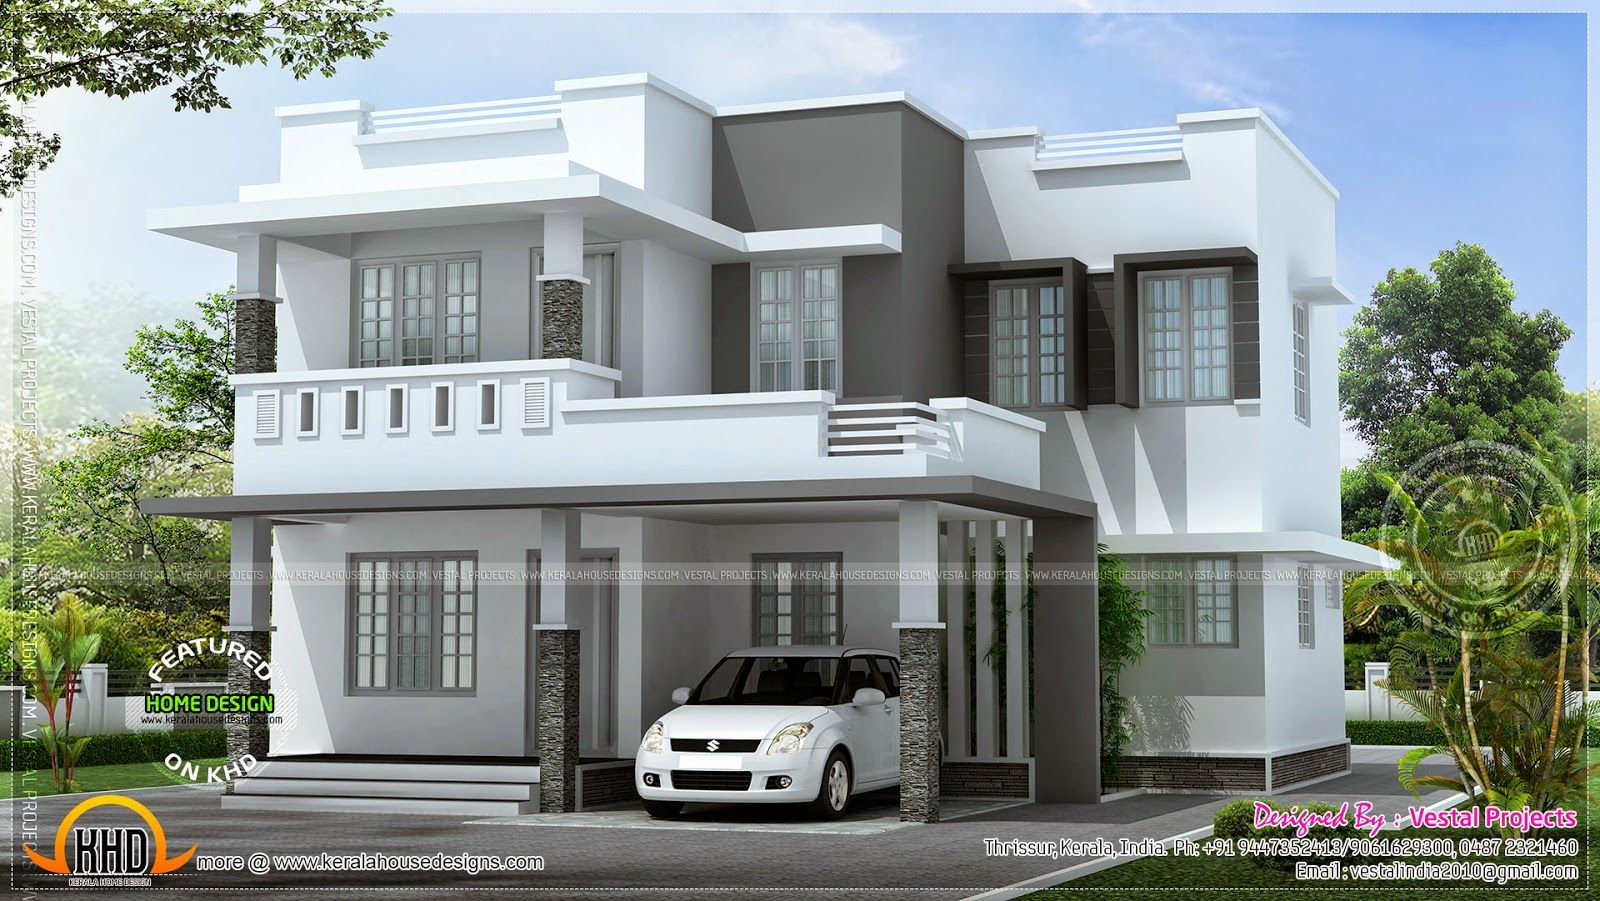 Pin by chanaka de on house exterior designssimple simple 2 storey house design two